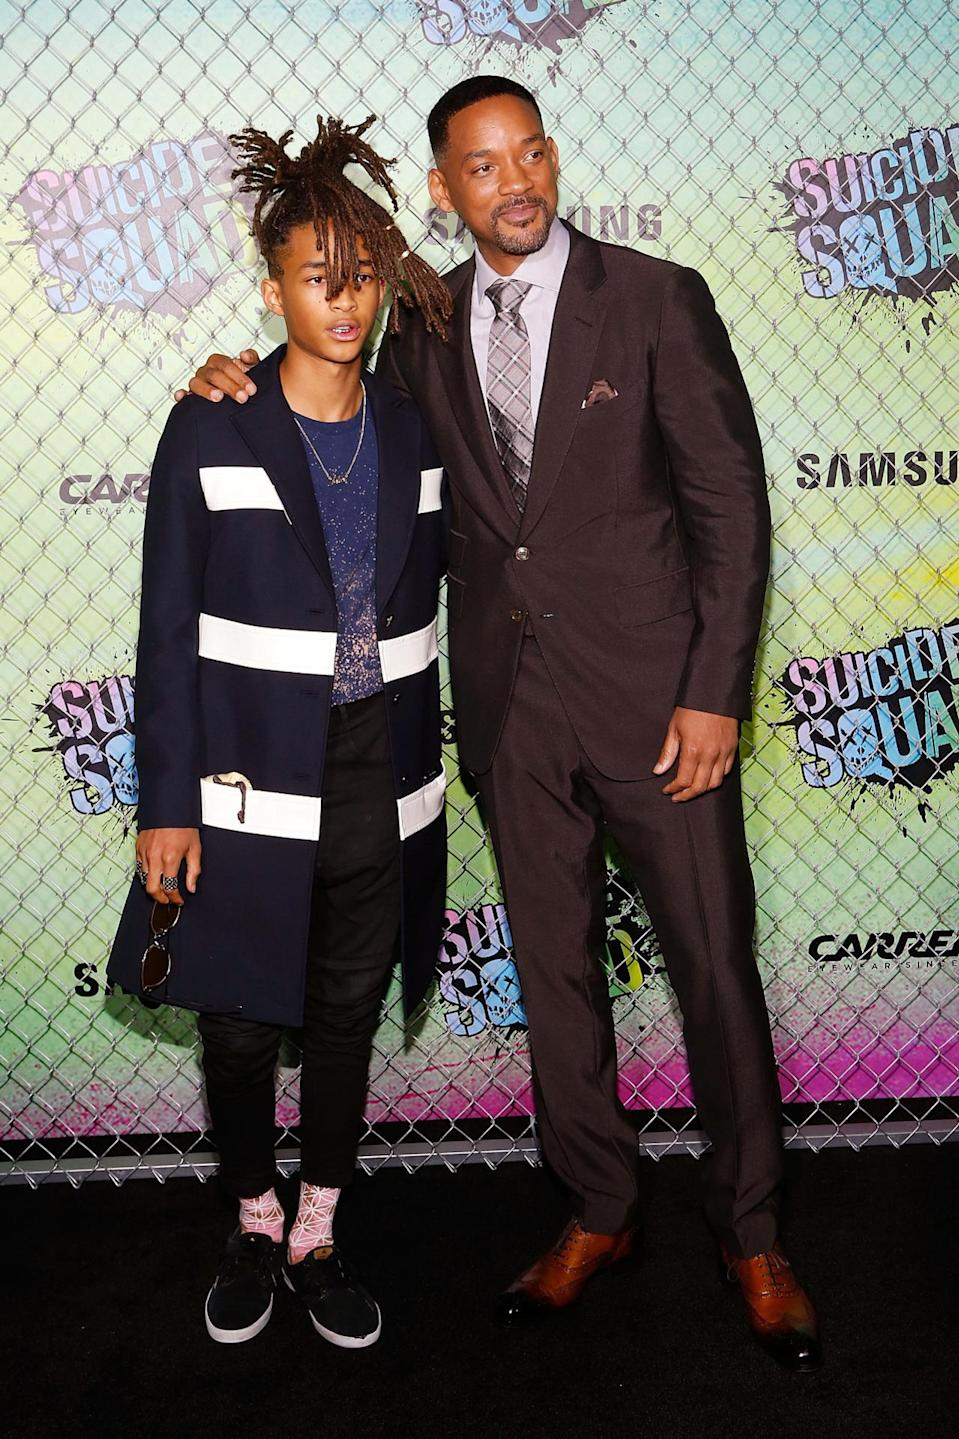 """<p>Will's style is always classic, while son Jaden likes to experiment with his wardrobe choices. Check out other father/son look-a-likes <a href=""""https://ca.style.yahoo.com/11-celebrity-dads-totally-twinning-185045178.html"""" data-ylk=""""slk:here;outcm:mb_qualified_link;_E:mb_qualified_link;ct:story;"""" class=""""link rapid-noclick-resp yahoo-link"""">here</a>. <i>(Photo by Taylor Hill/FilmMagic)</i></p>"""